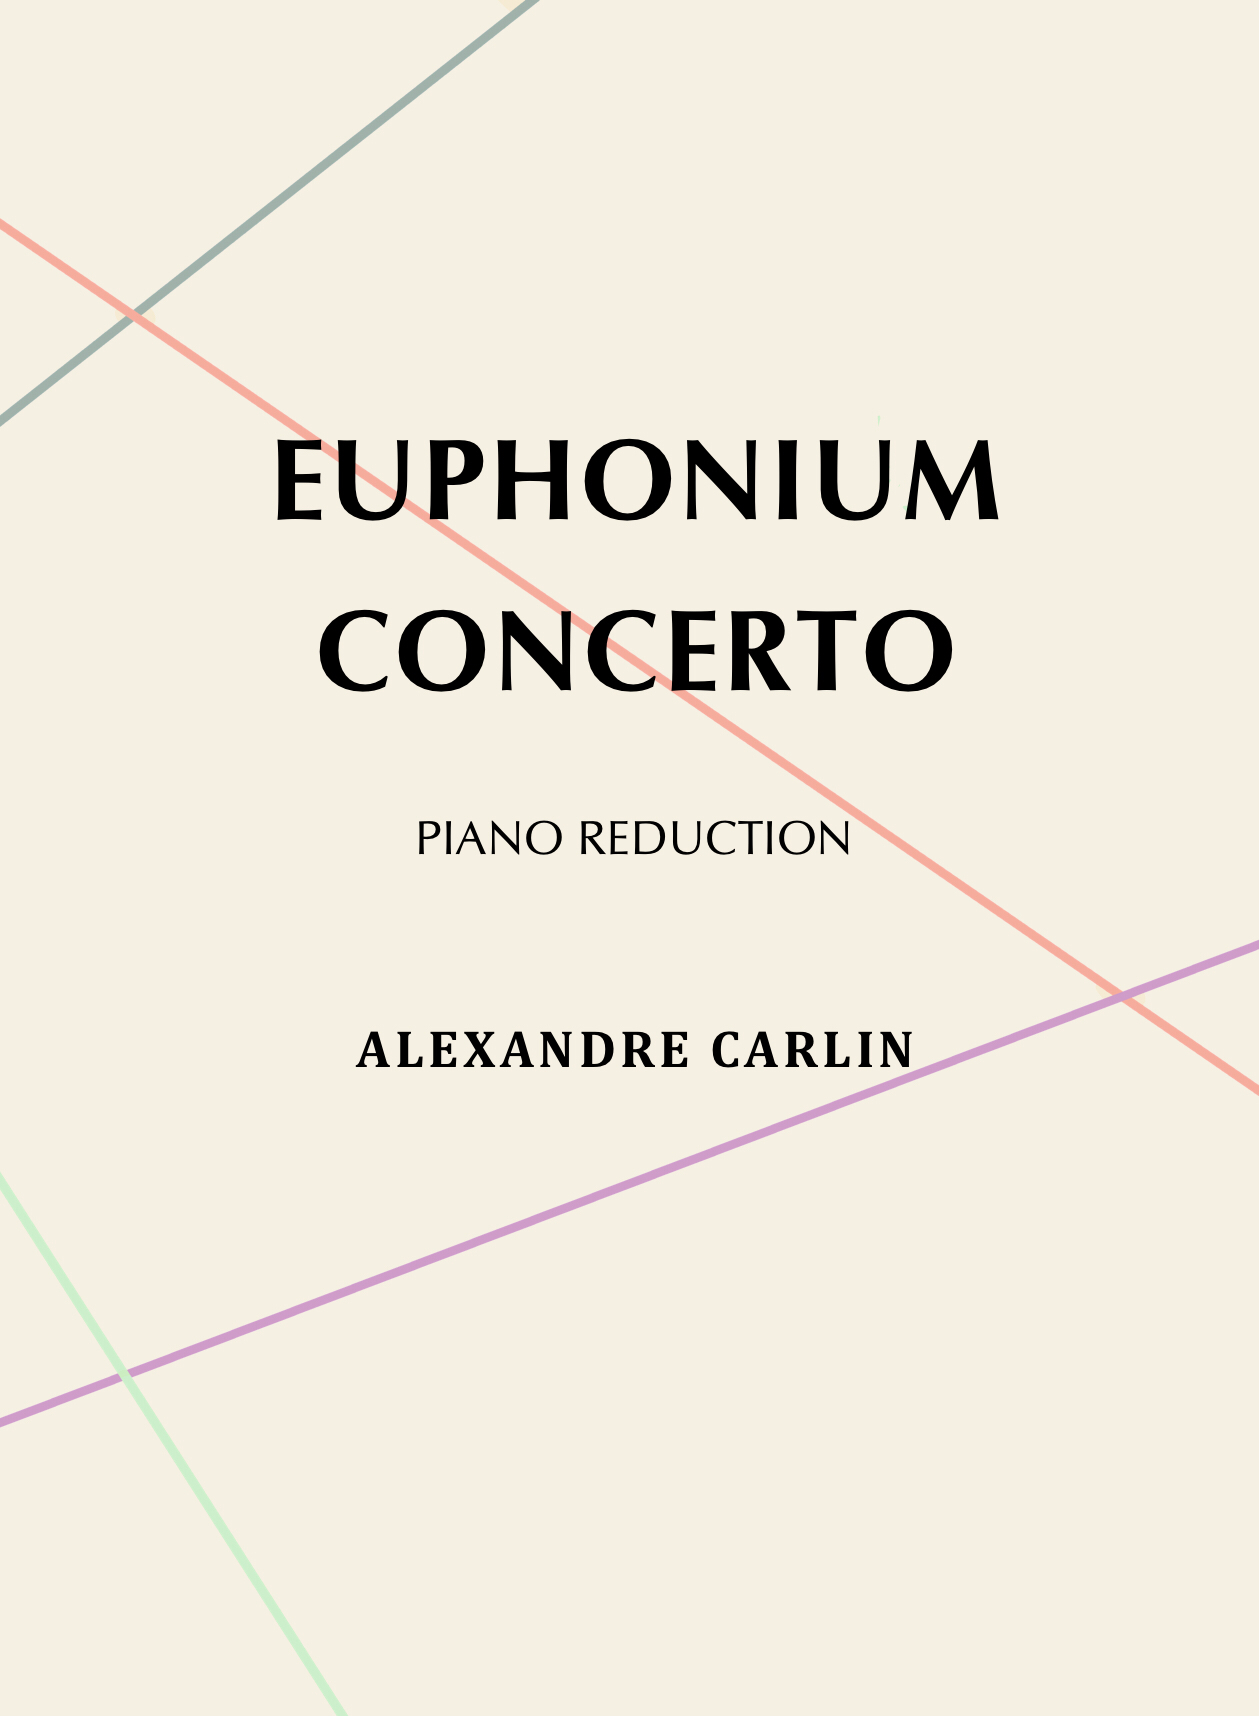 Concerto For Euphonium, Piano Reduction by Alexandre Carlin